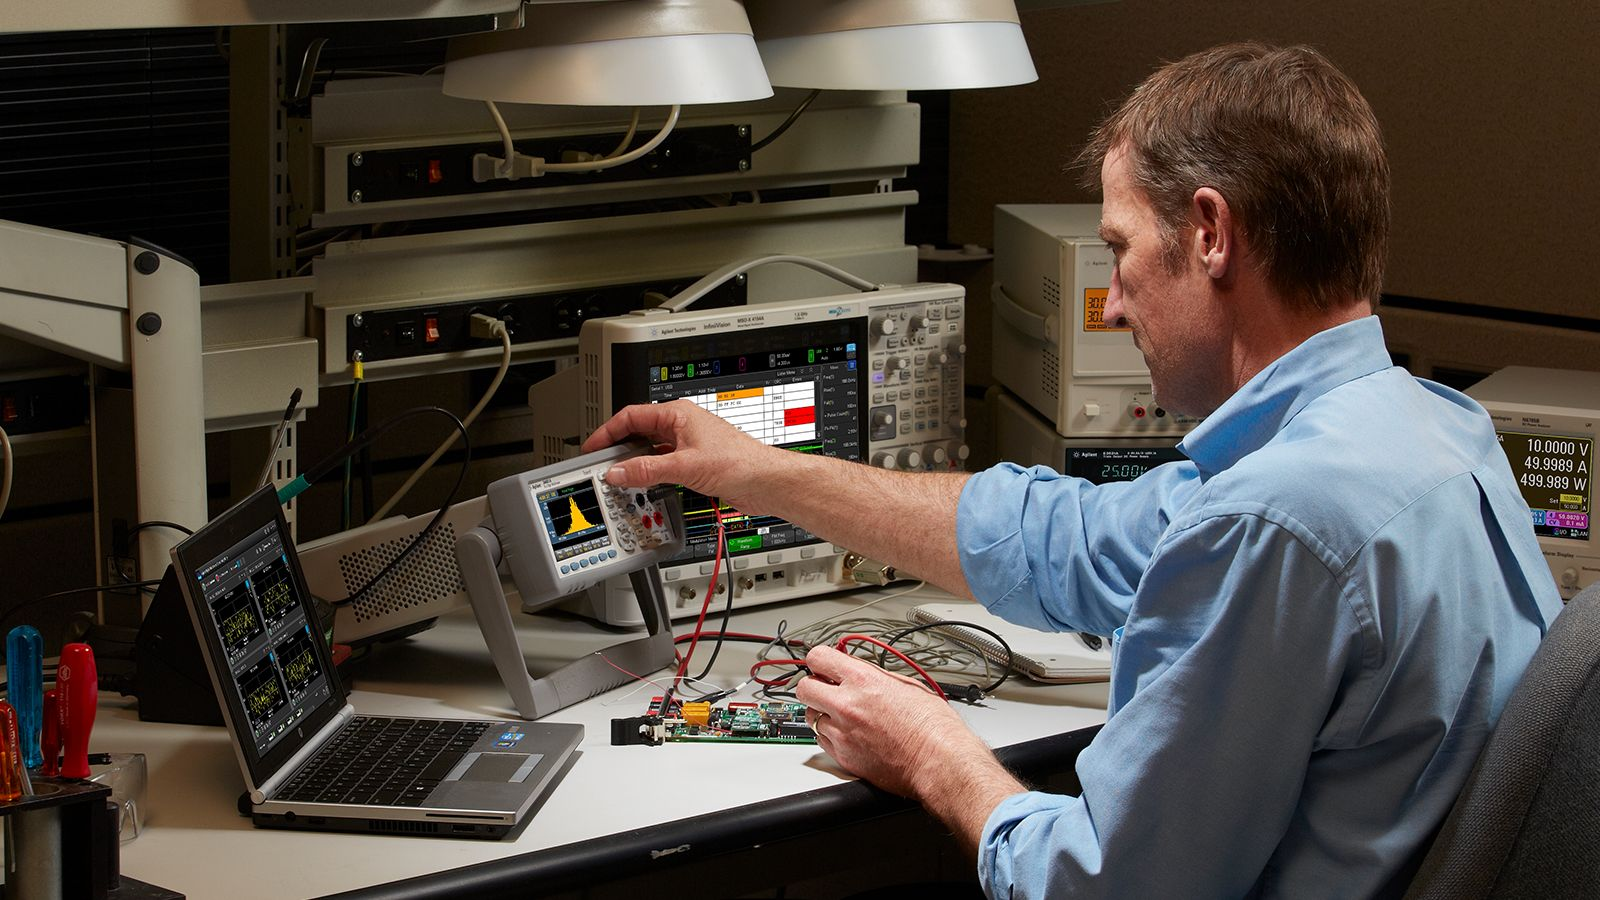 Engineer troubleshooting electronic boards with Keysight's digital multimeter in the lab